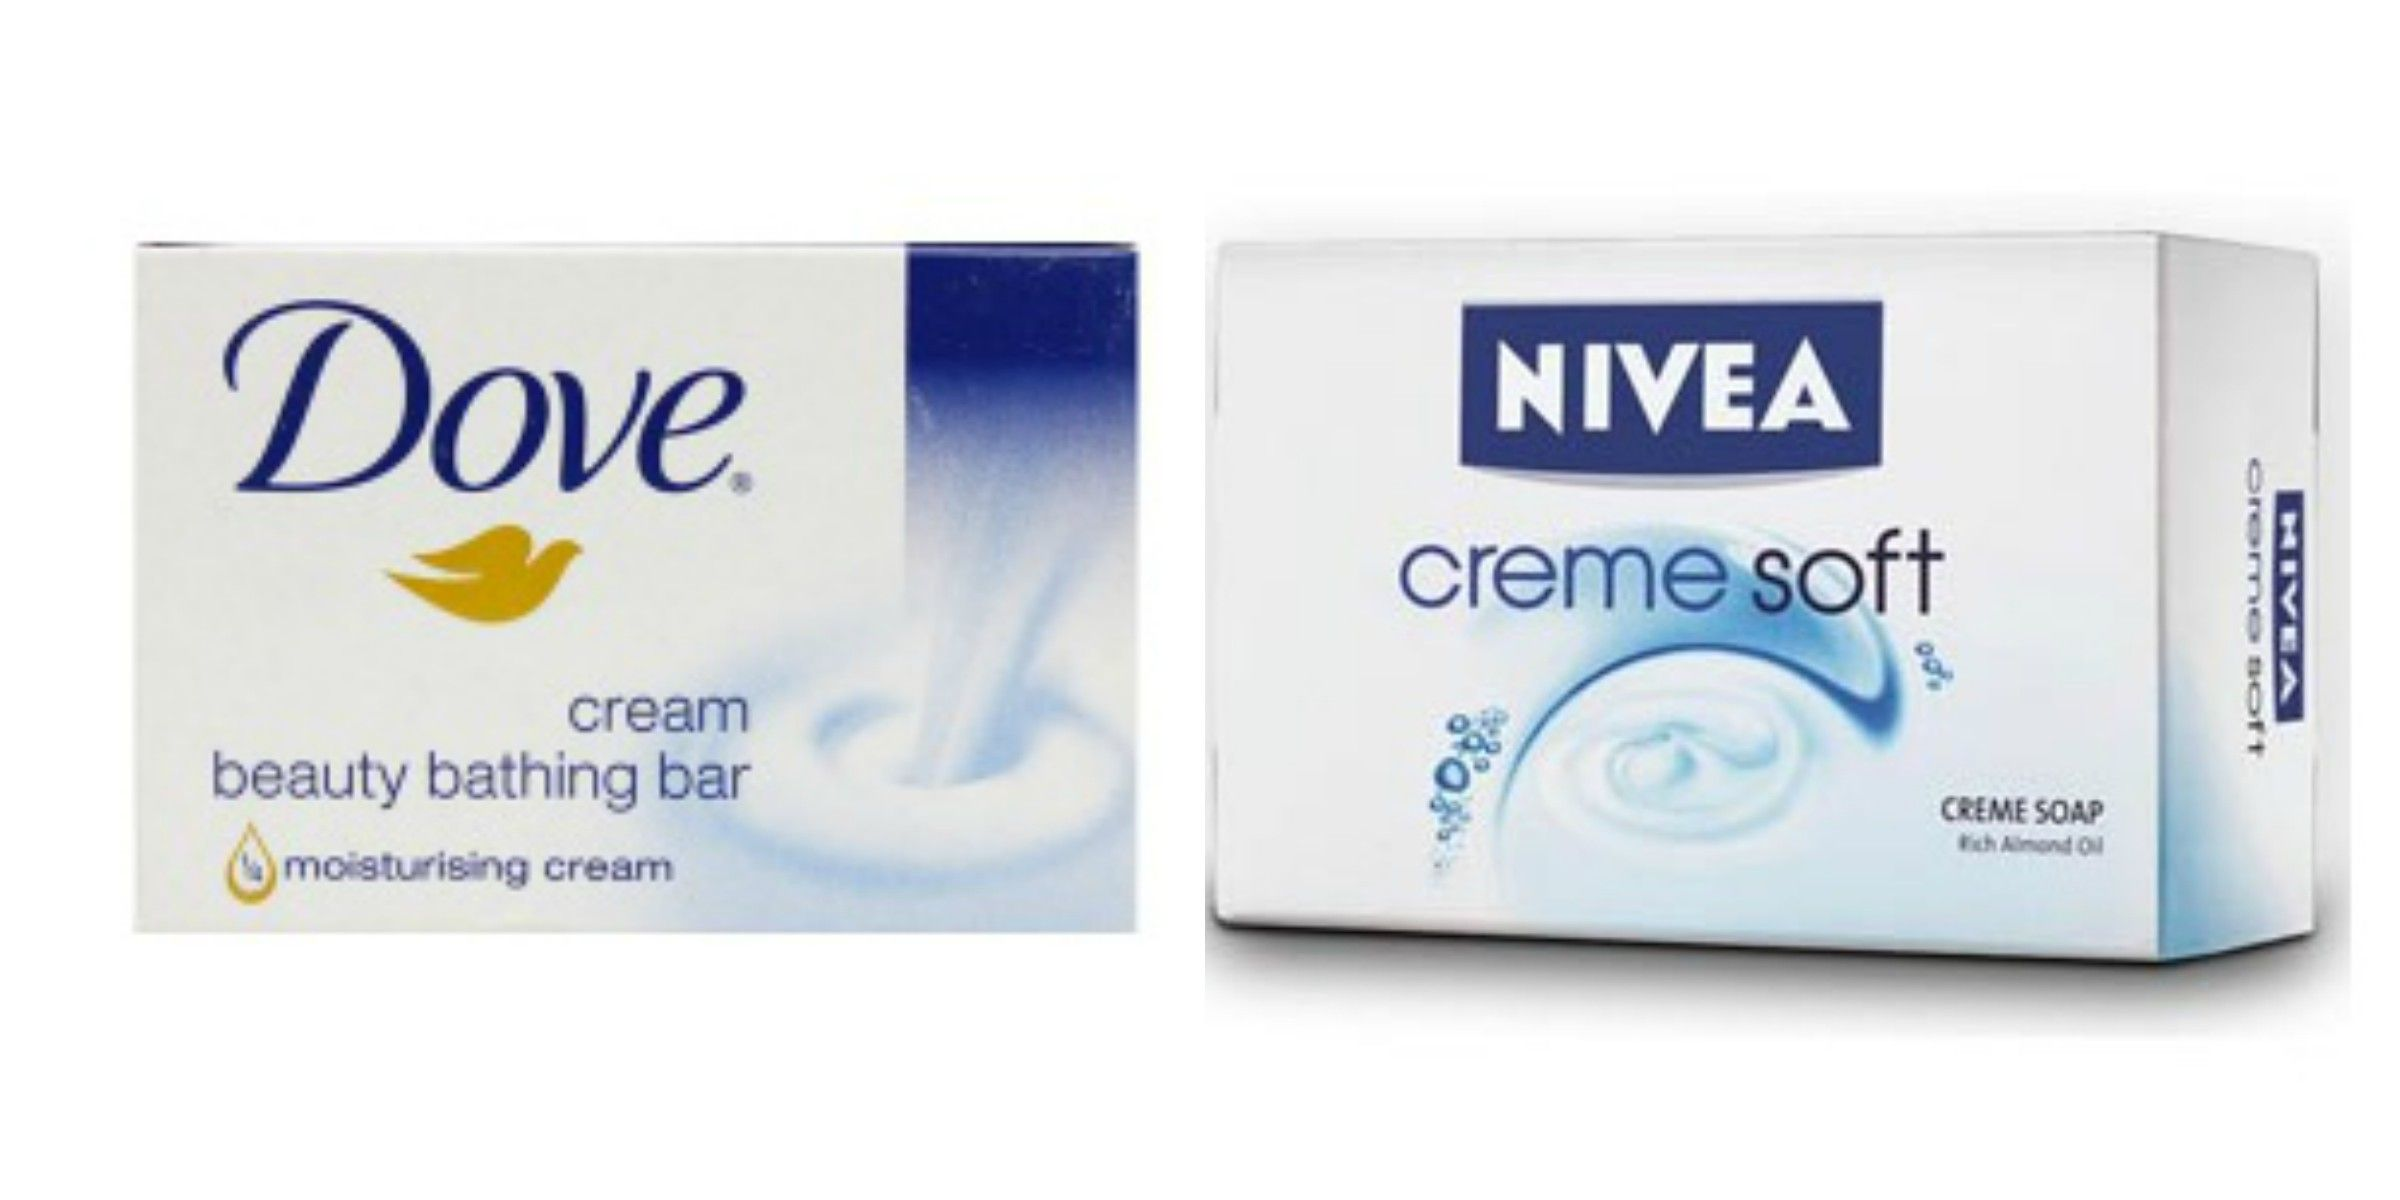 Profile Of Competitors Nivea Is A Global Skin And Body Care Brand That Is Owned By The German Company Beiersdorf Nivea Moisturizer Cream Dove Brand Dove Soap